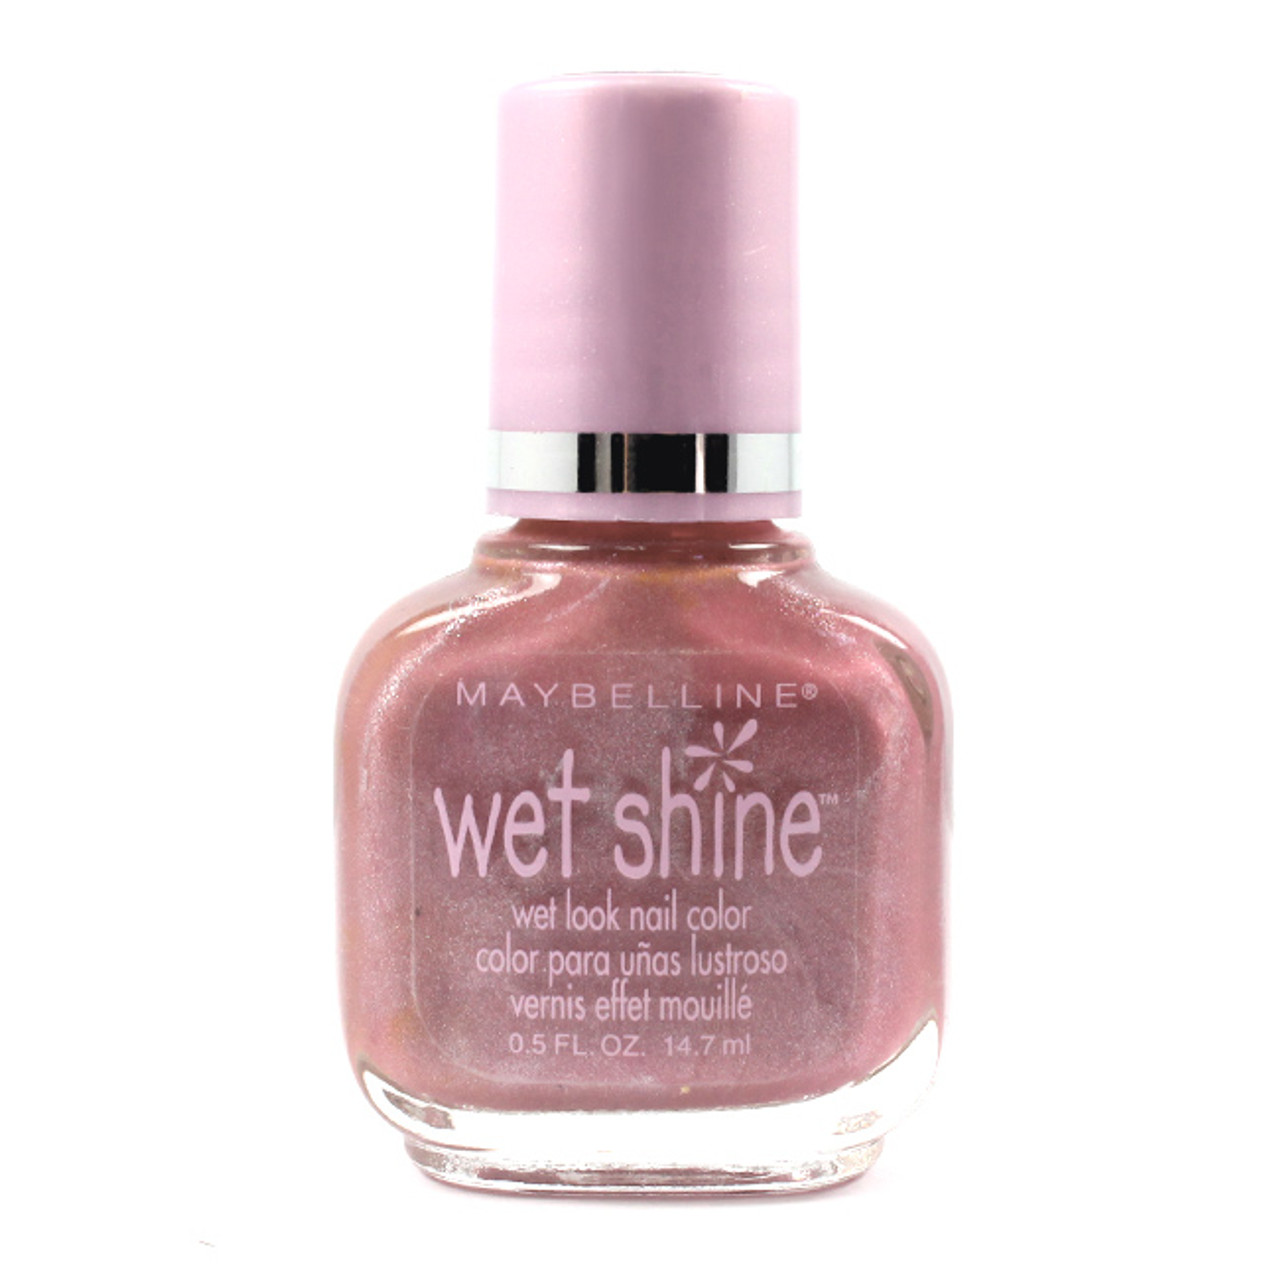 Maybelline Wet Shine Wet Look Nail Color, 0.5 oz. - BuyMeBeauty.com